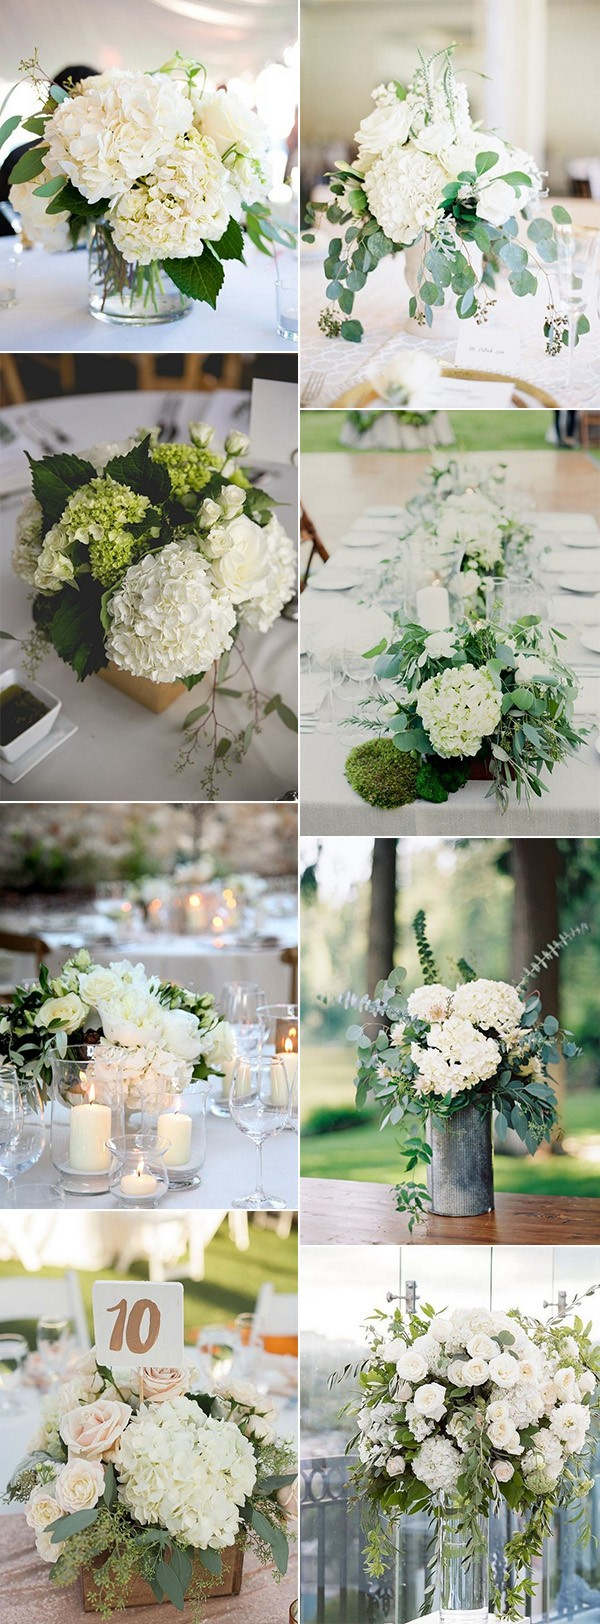 trending hydrangea and eucalyptus wedding centerpiece ideas